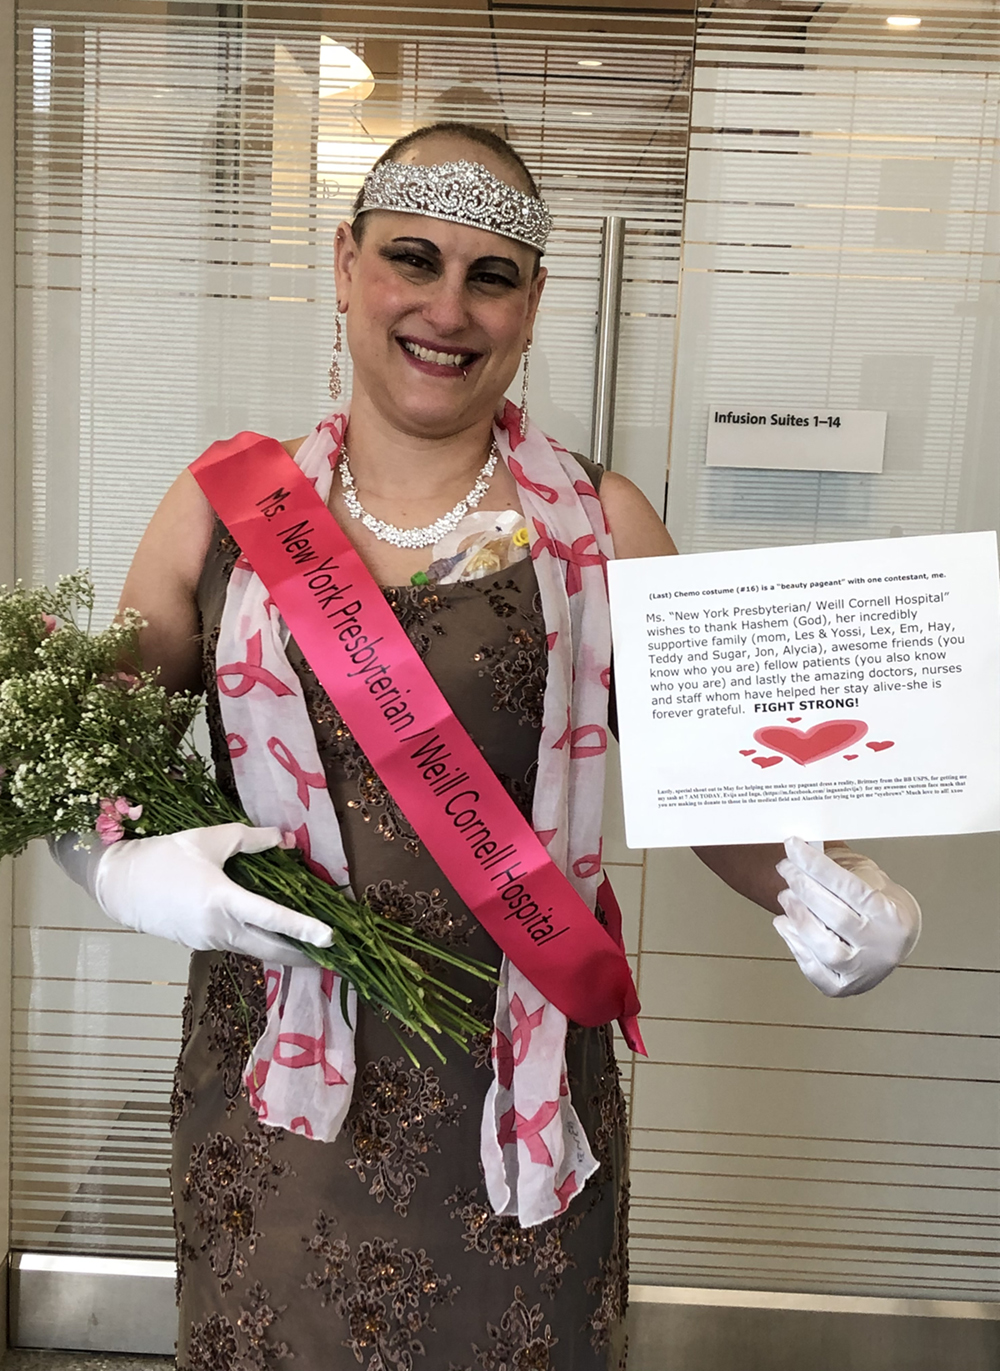 Ellen Fields, breast cancer patient, dresses up for chemo treatment.